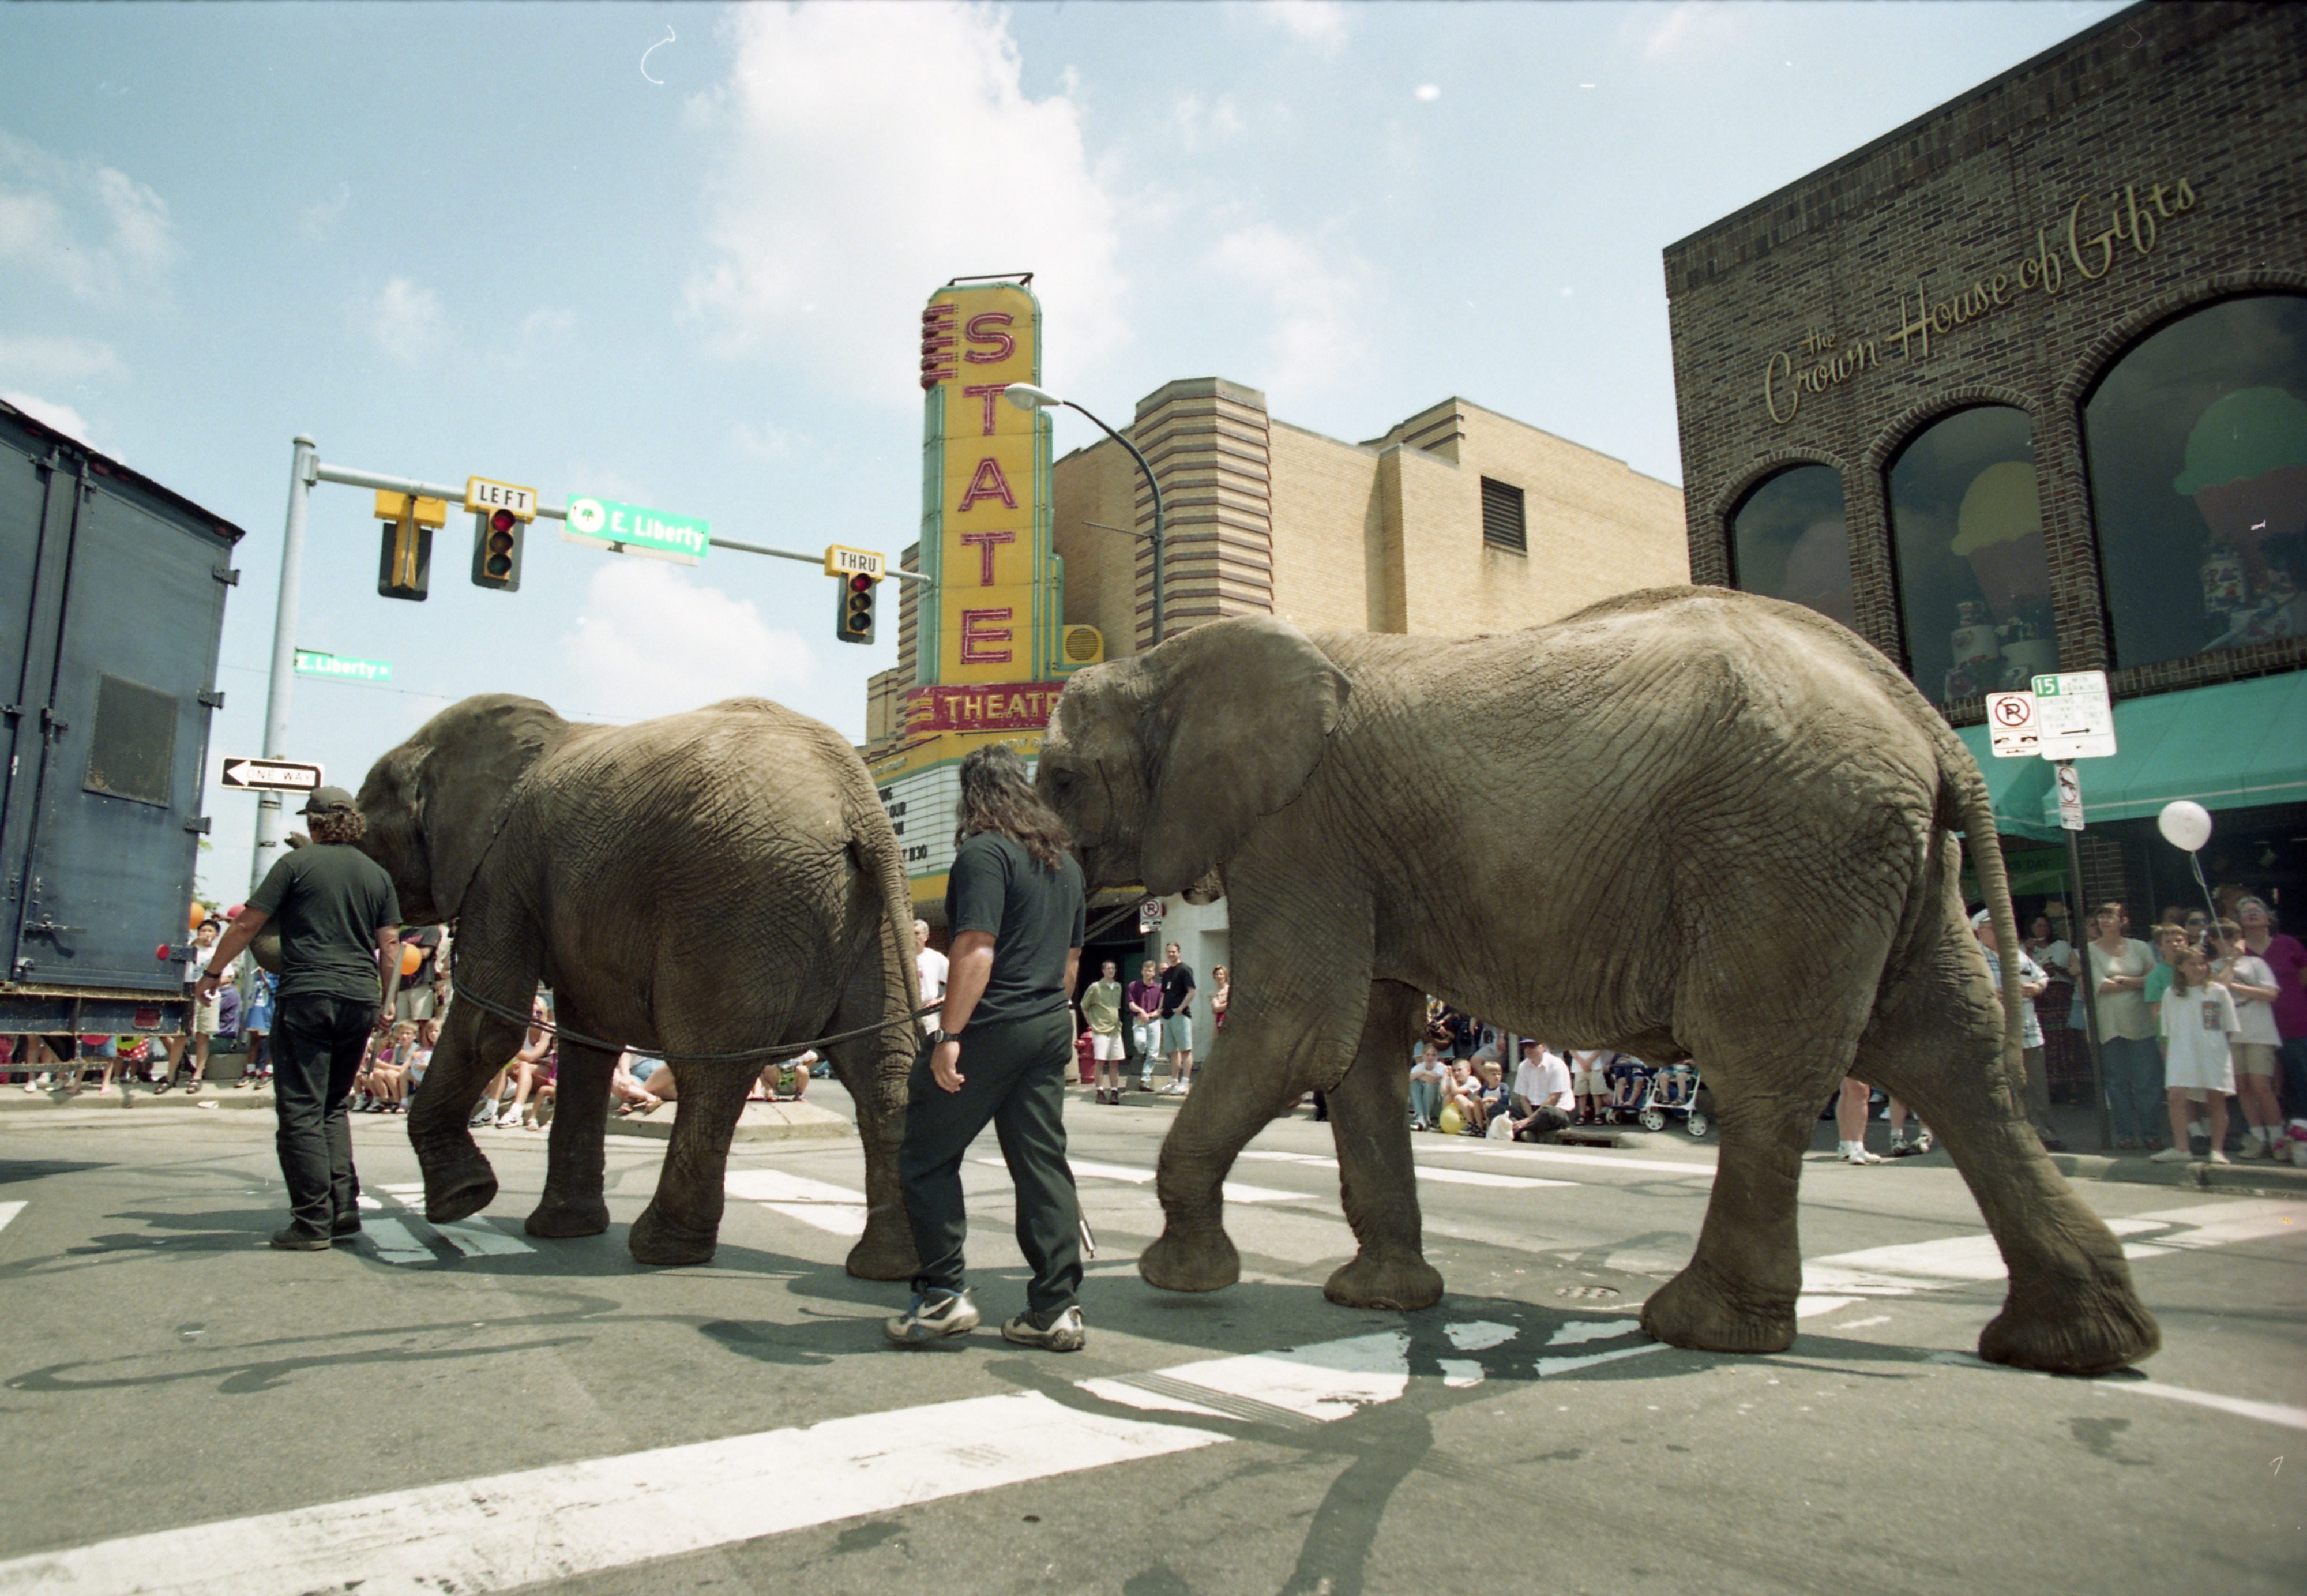 Elephants In The Royal Hanneford Circus Parade March Past Crown House Of Gifts, June 13, 1997 image